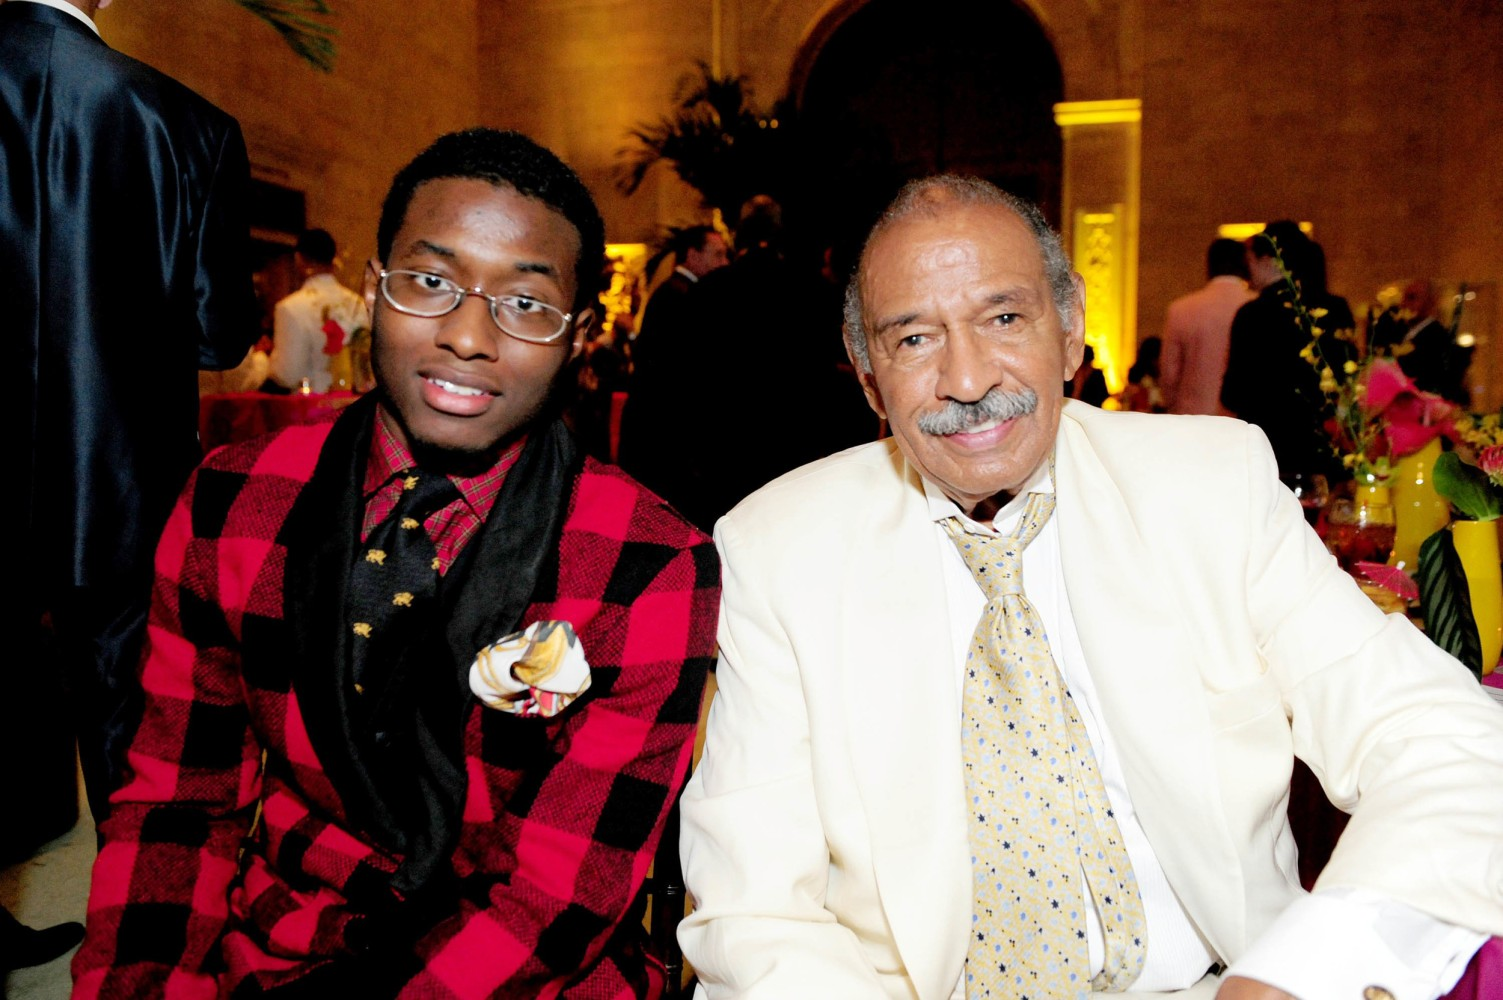 Conyers' Son, Handpicked Successor Was Previously Arrested for Domestic Assault